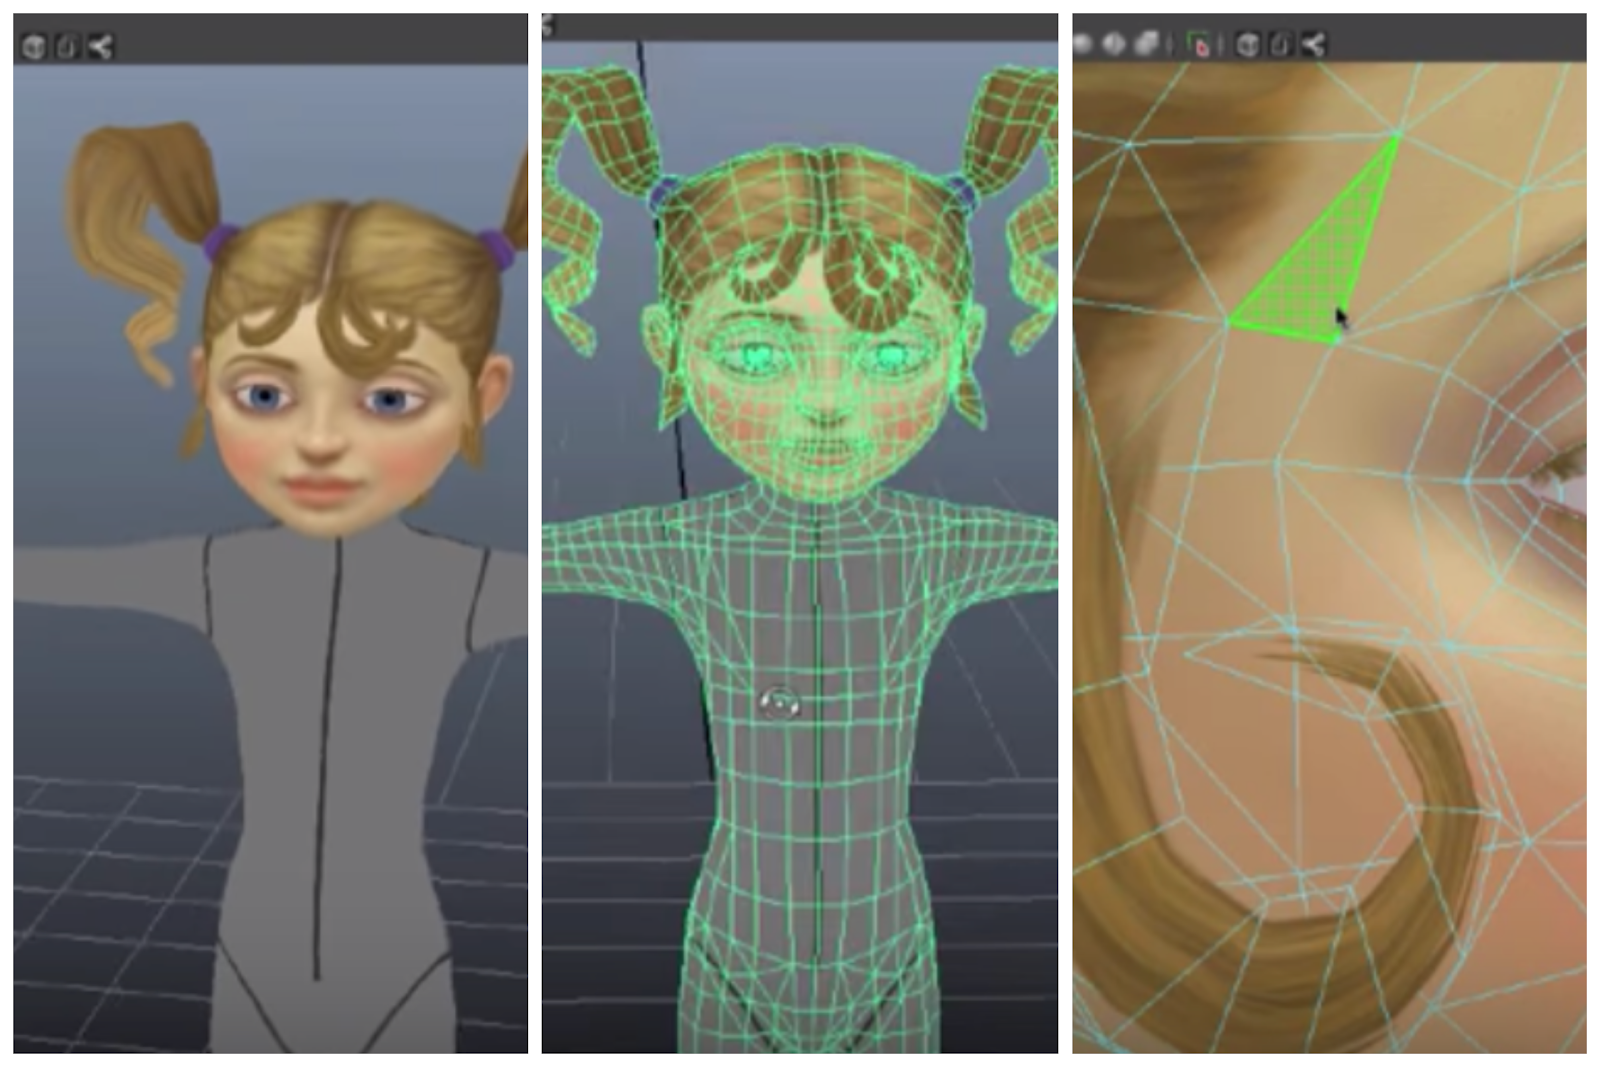 screenshot of a 3D model of a girl that zooms in to illustrate that 3D models are made up of polygons